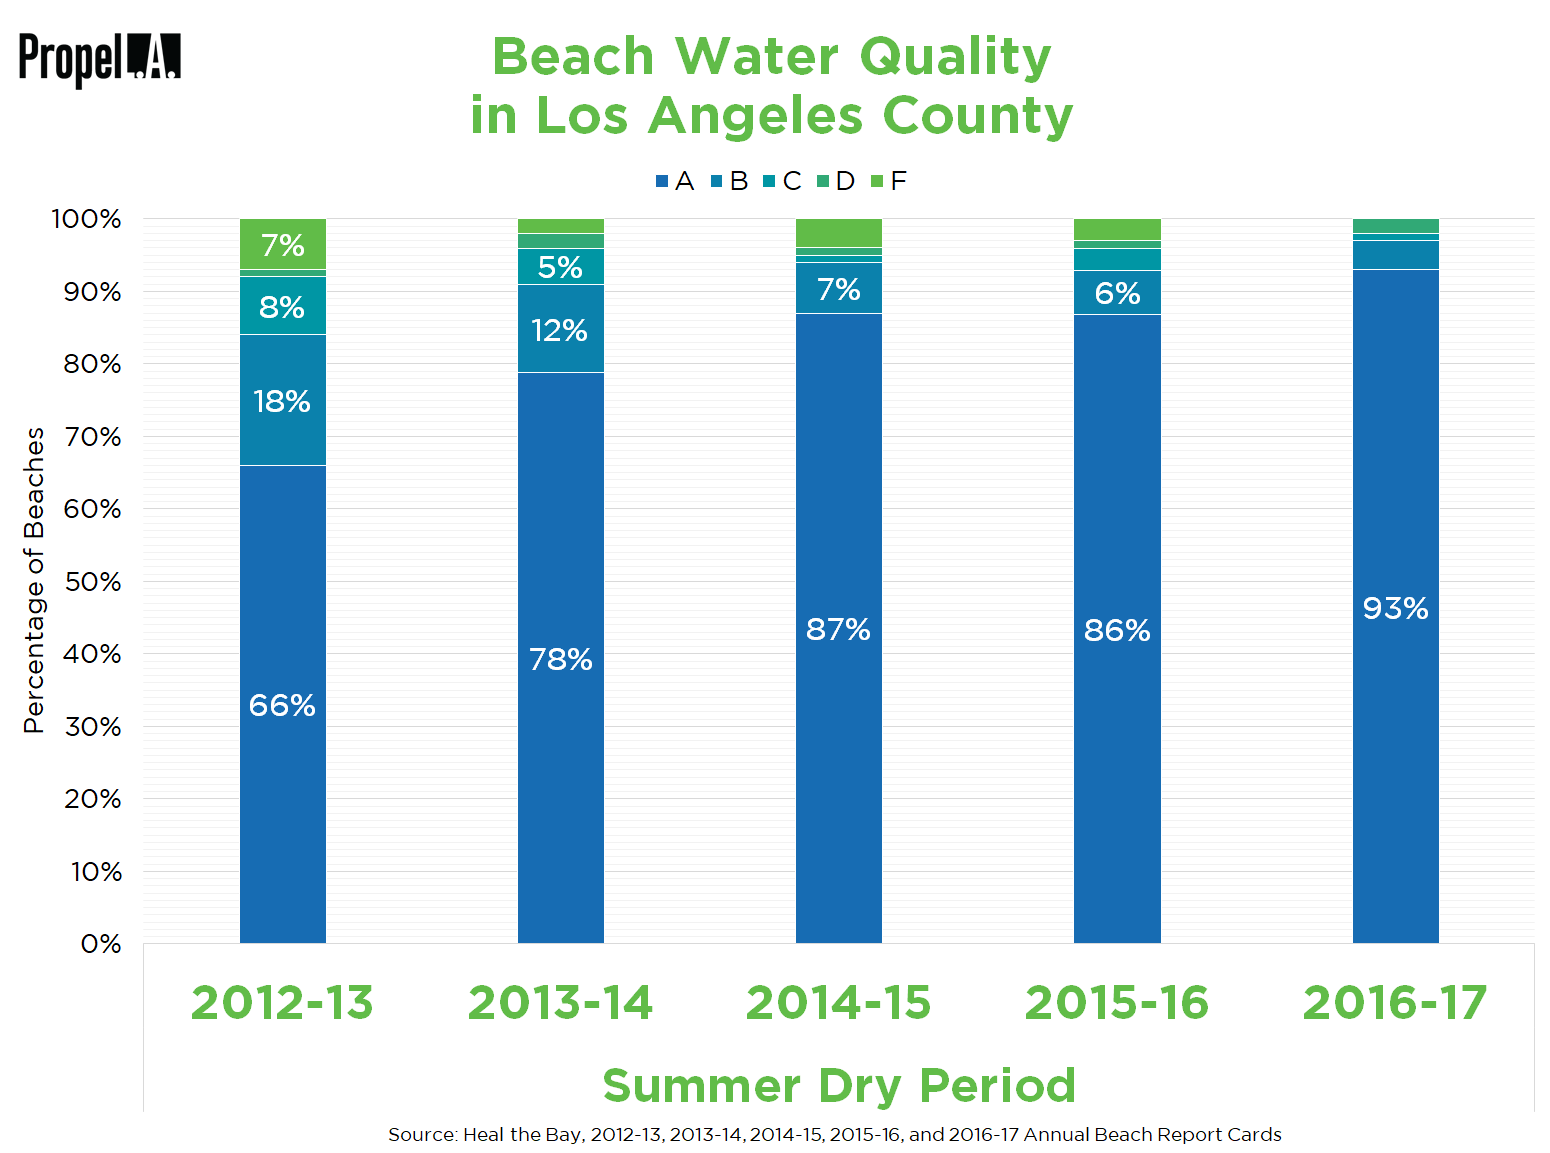 Beach Water Quality